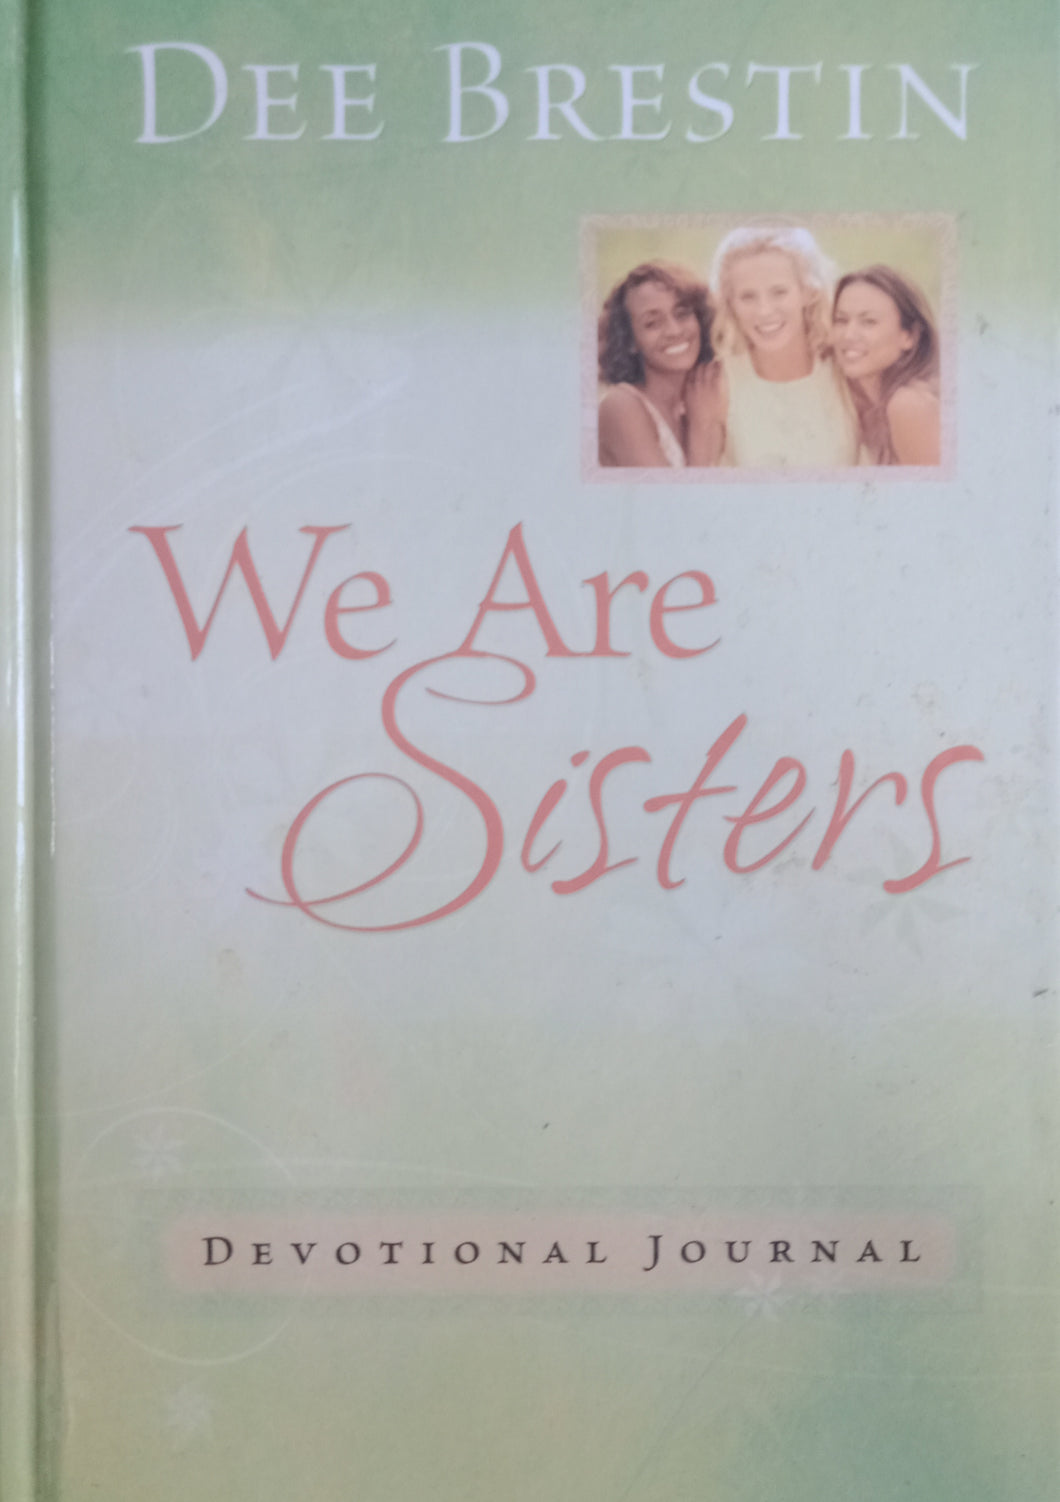 We Are Sisters by Dee Brestin